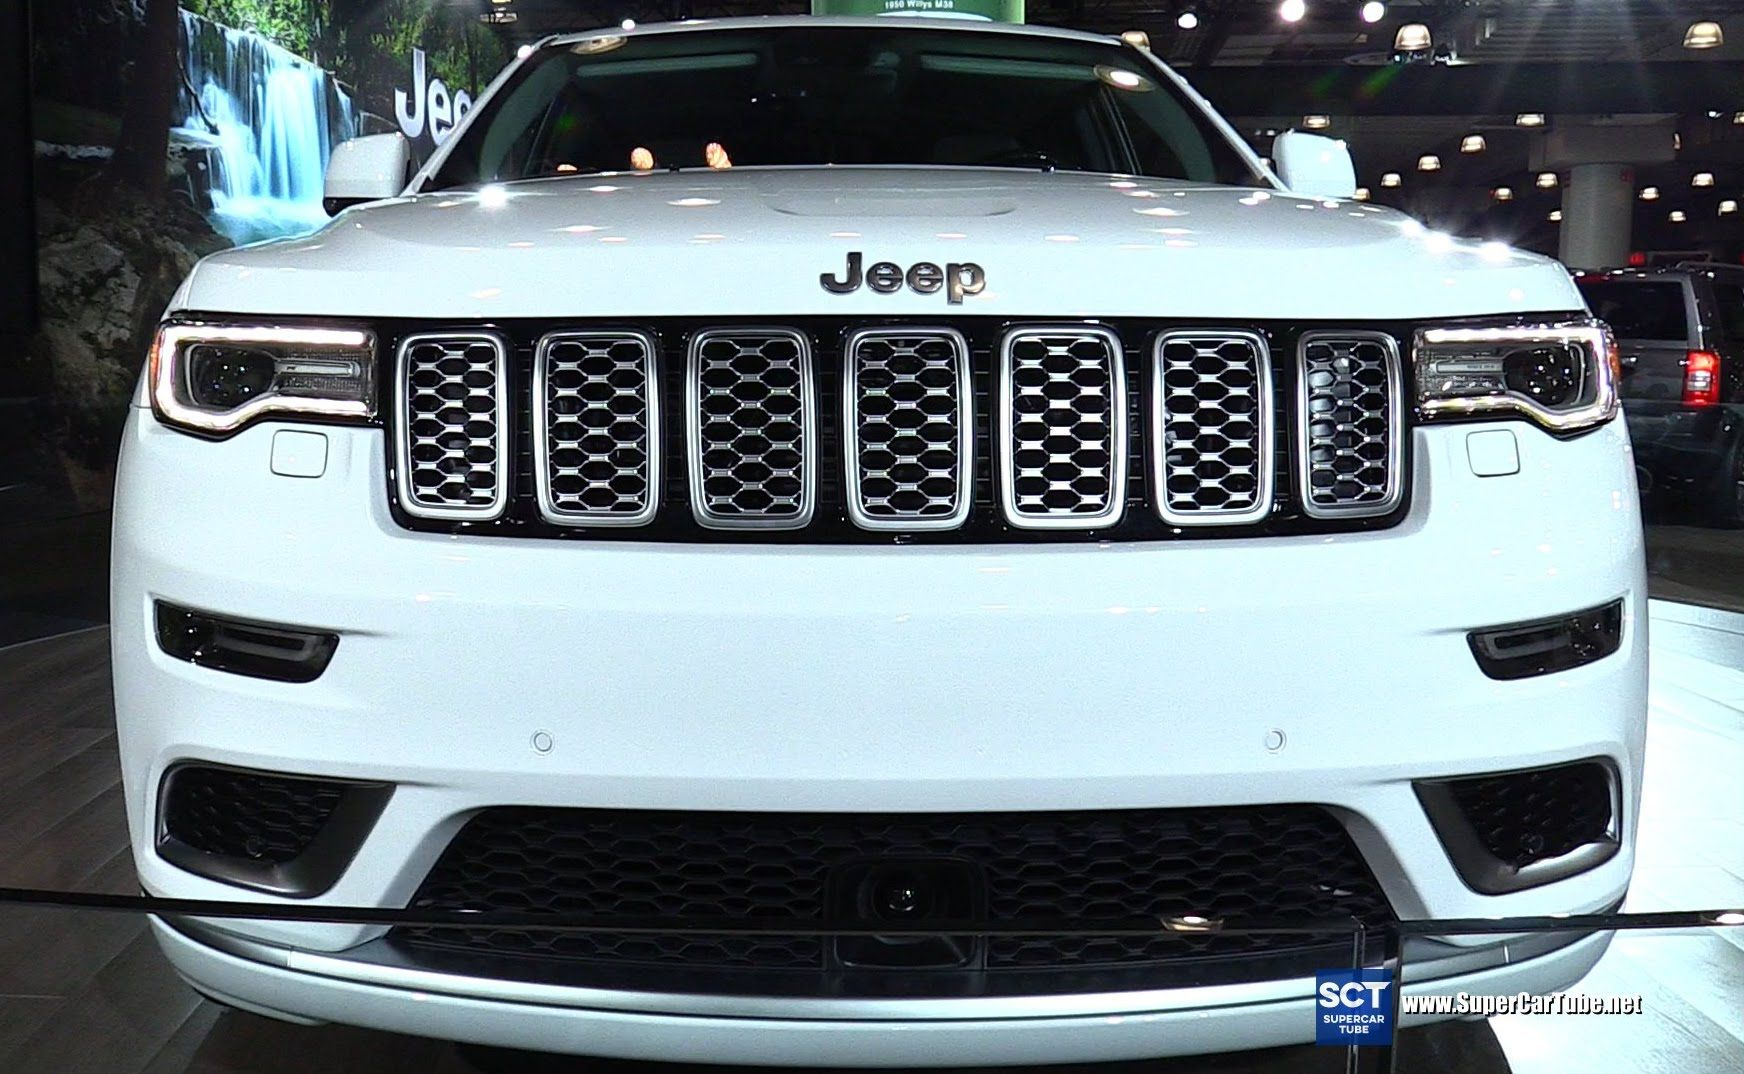 2017 Jeep Grand Cherokee Summit Exterior And Interior Walkaround Debut At 2016 New York Auto Sho 2017 Jeep Grand Cherokee Jeep Grand Cherokee Jeep Grand